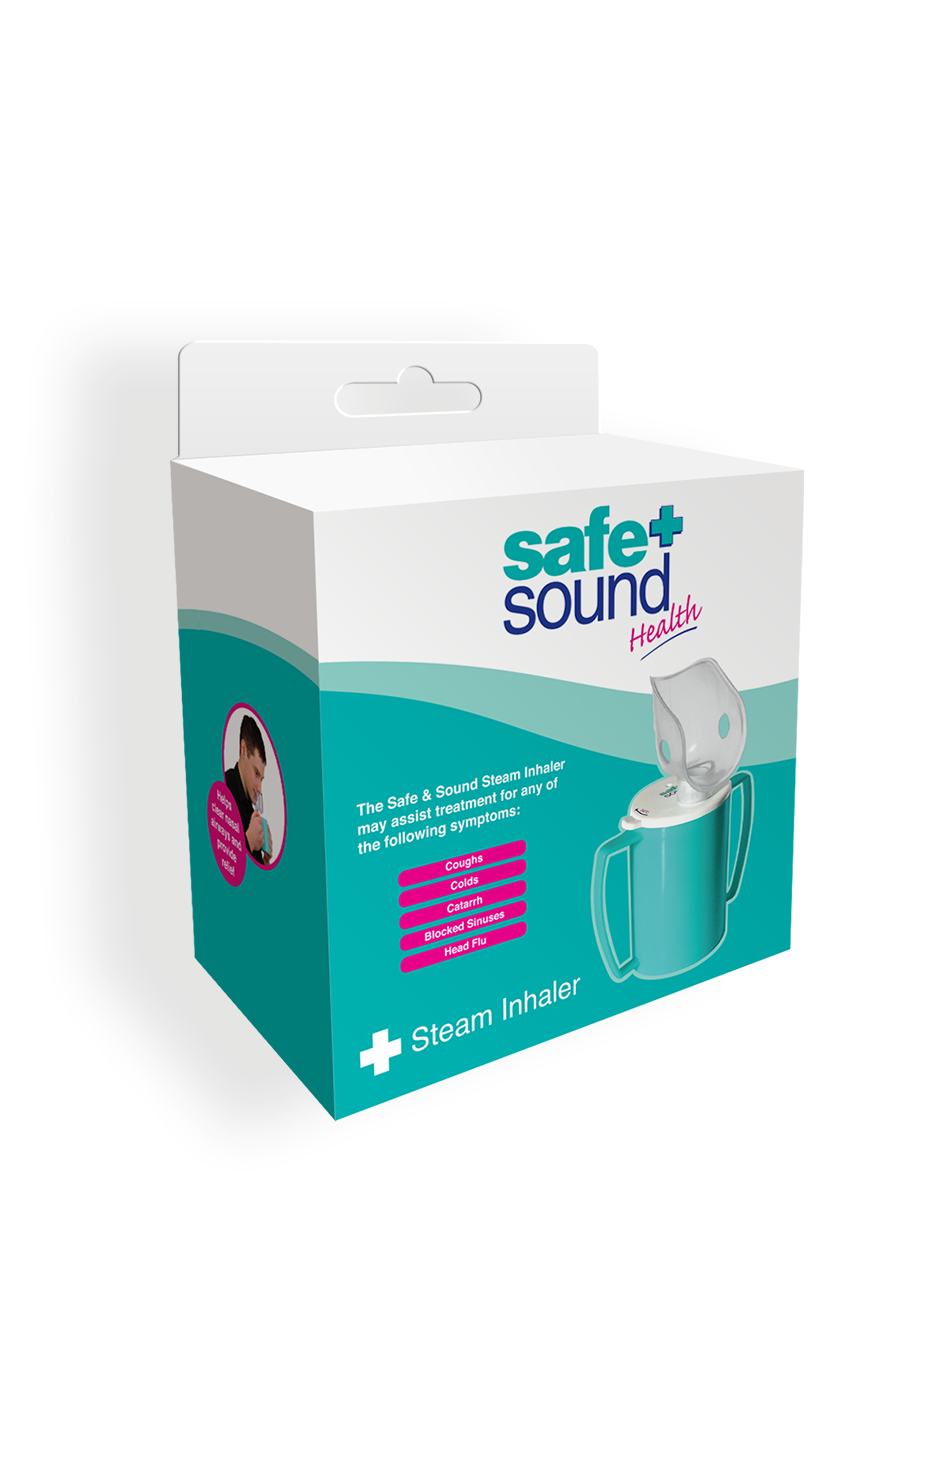 Safe and Sound Health Steam Inhaler